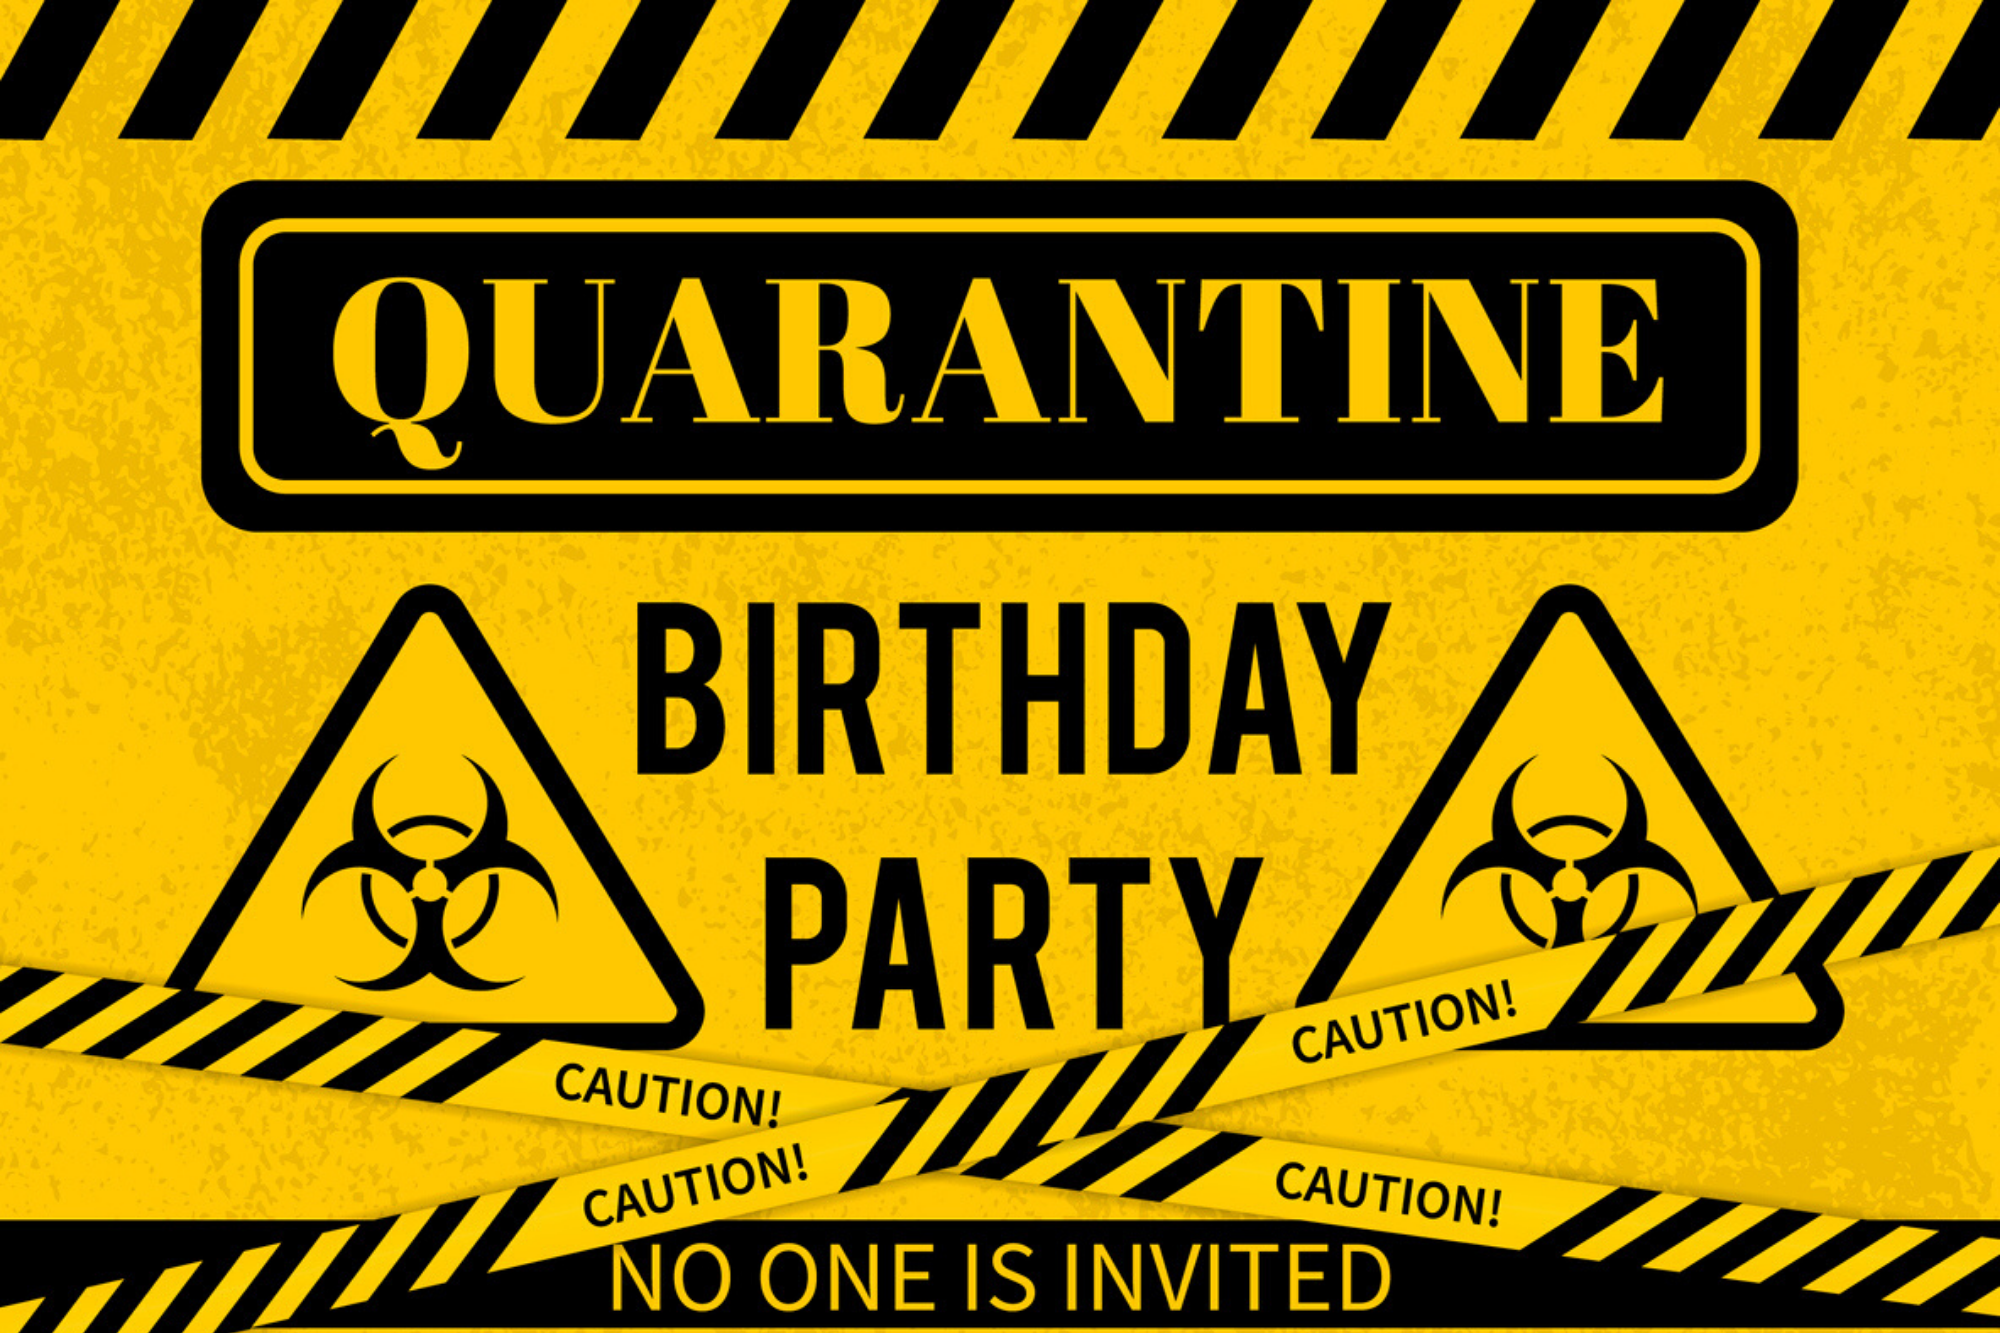 Happy Birthday Quarantine